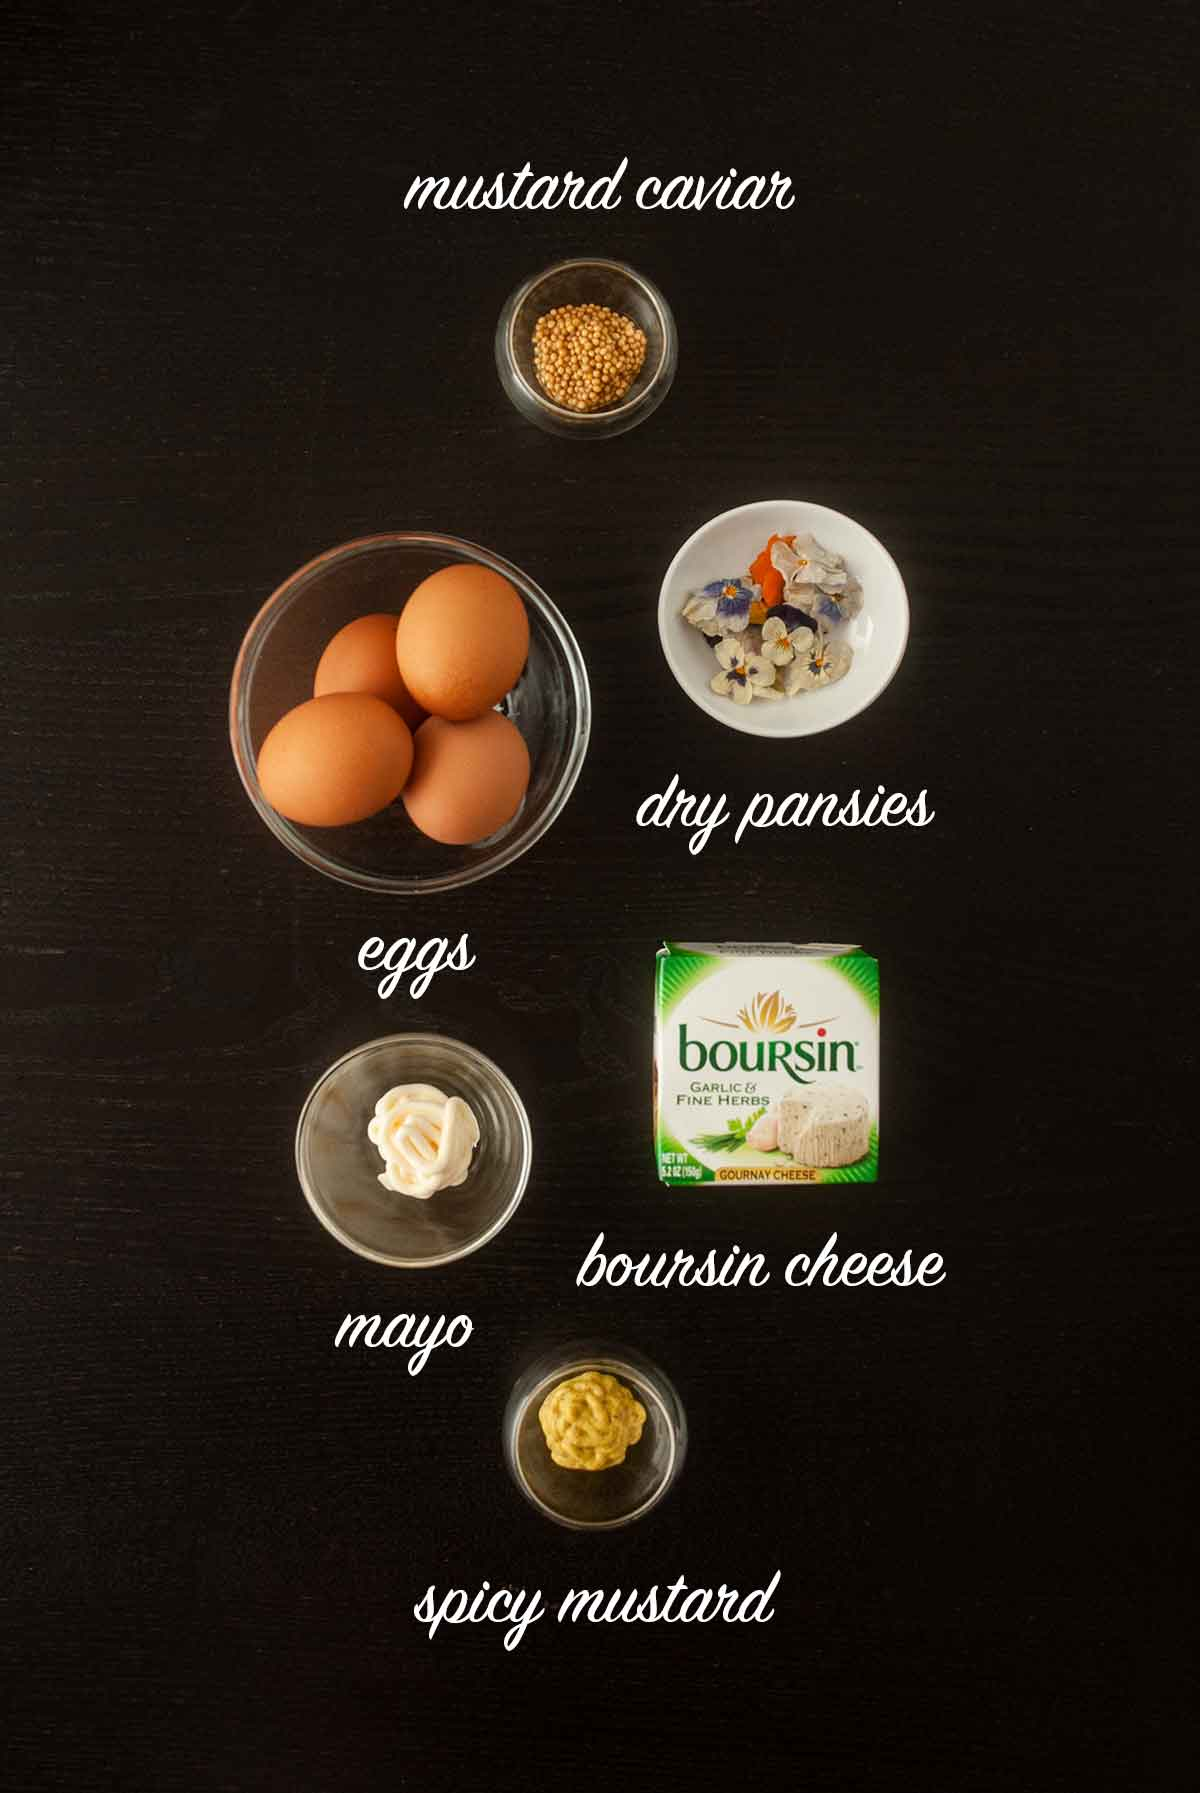 6 ingredients for making deviled eggs on a dark table with titles describing what they are.